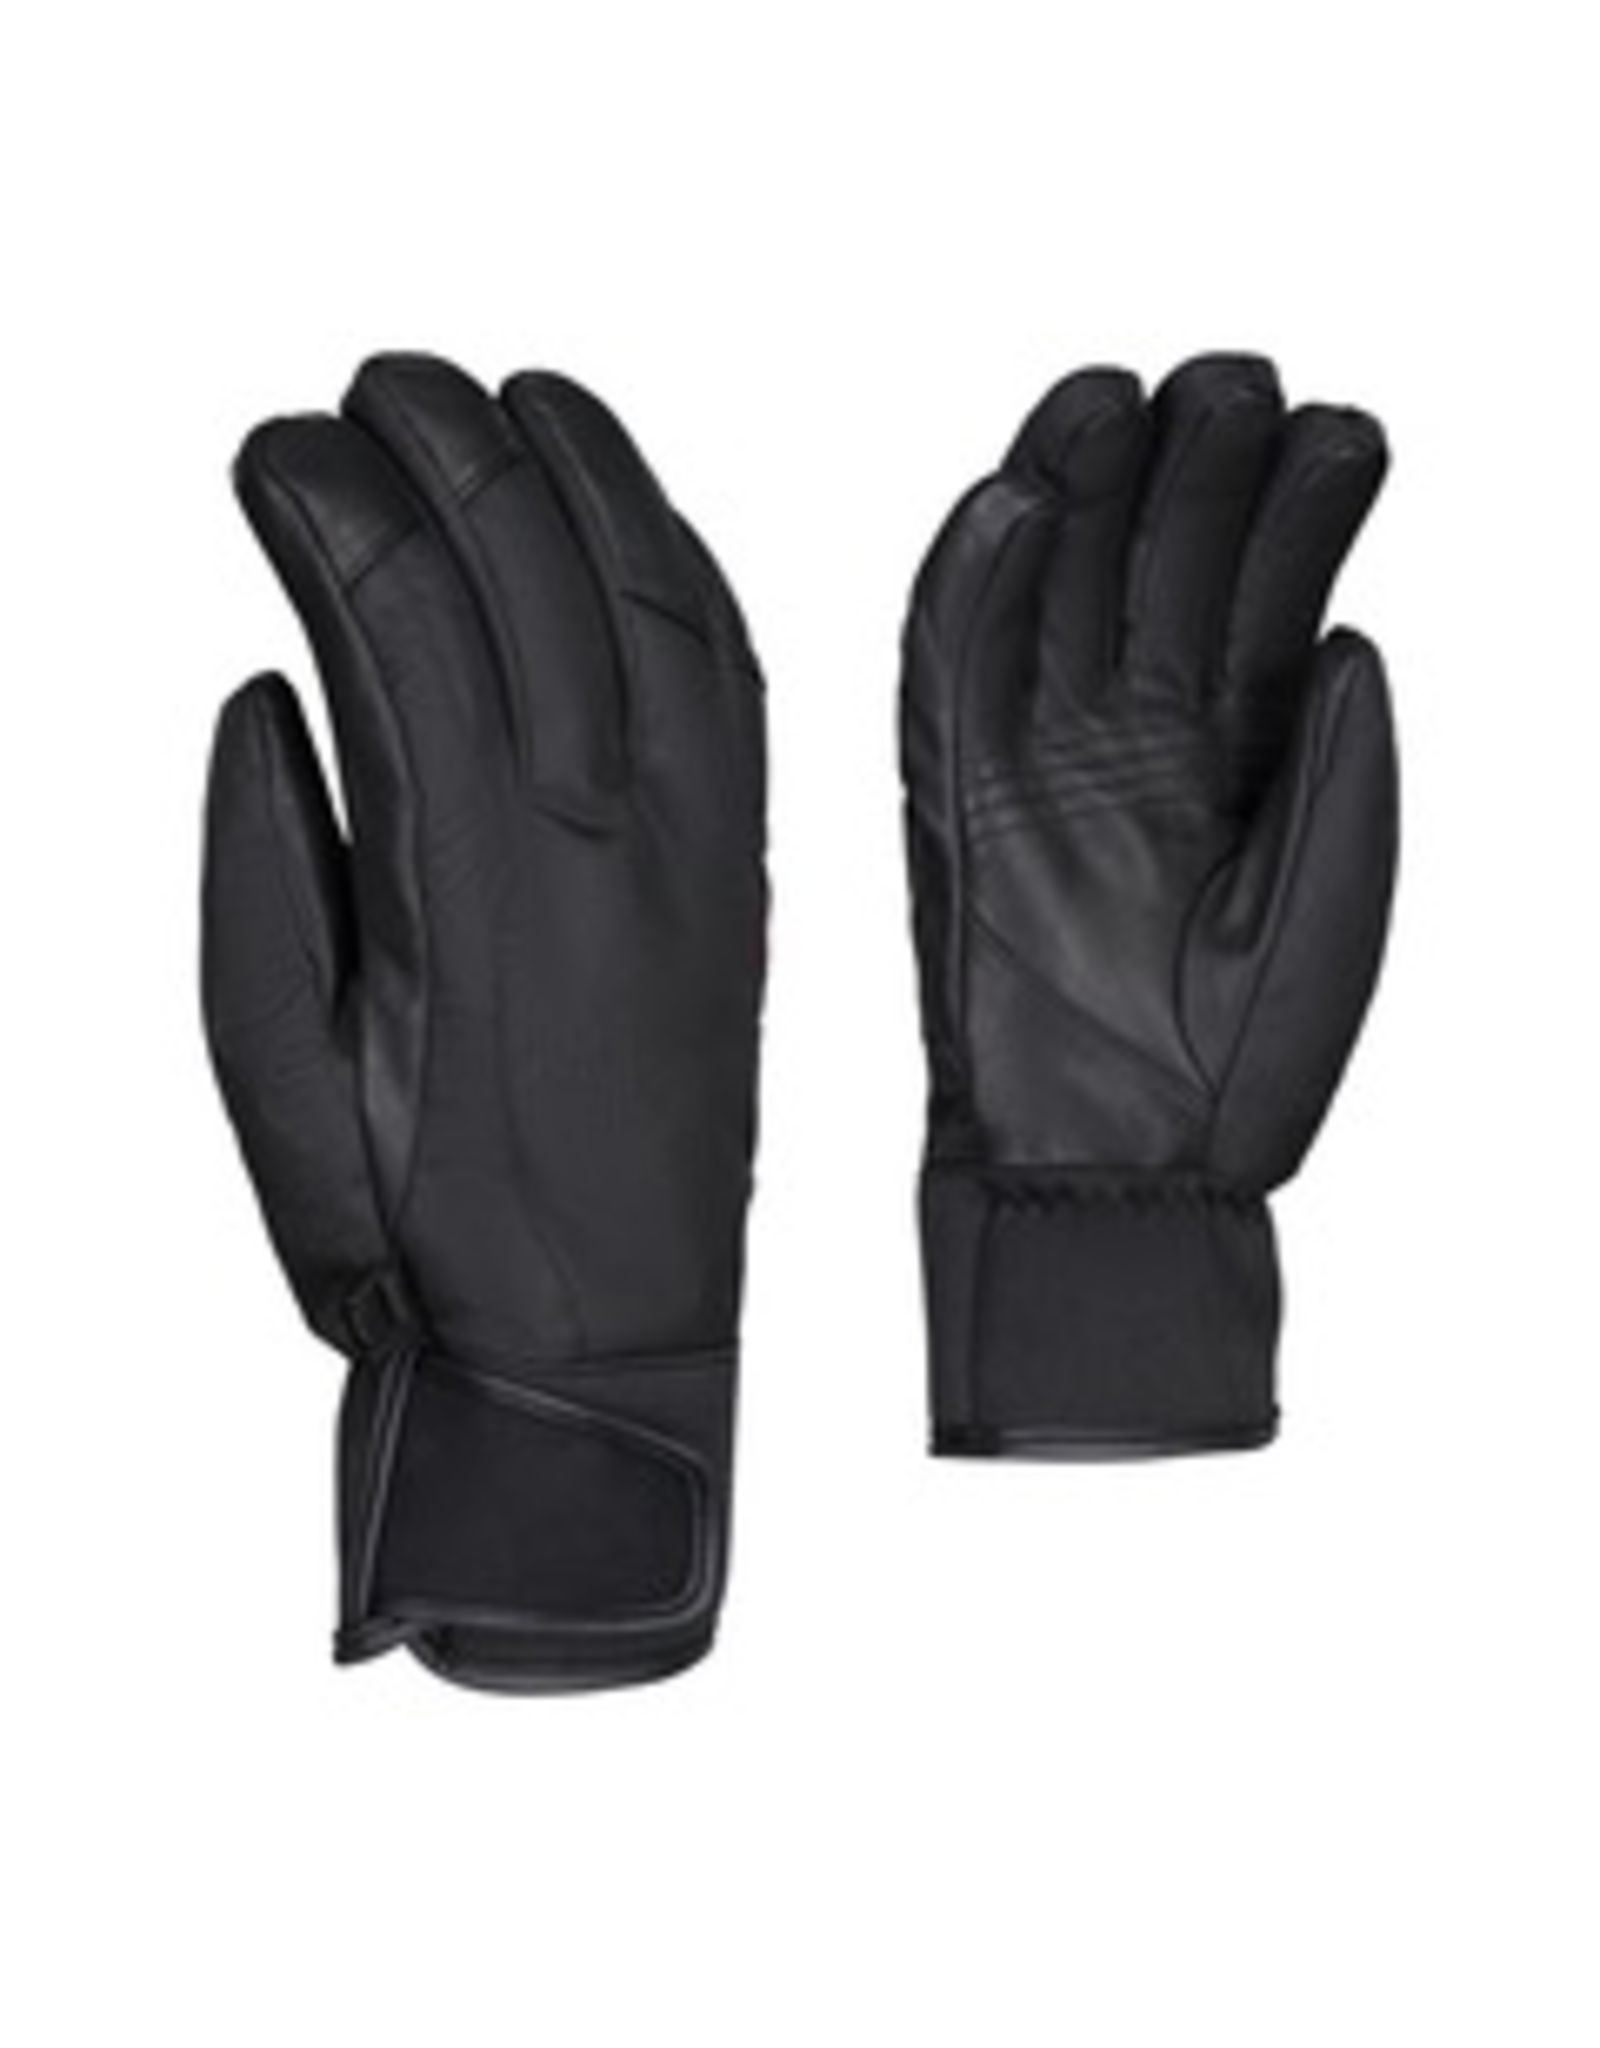 GKS Ganka GKS Polyester Glove With Heatlocker